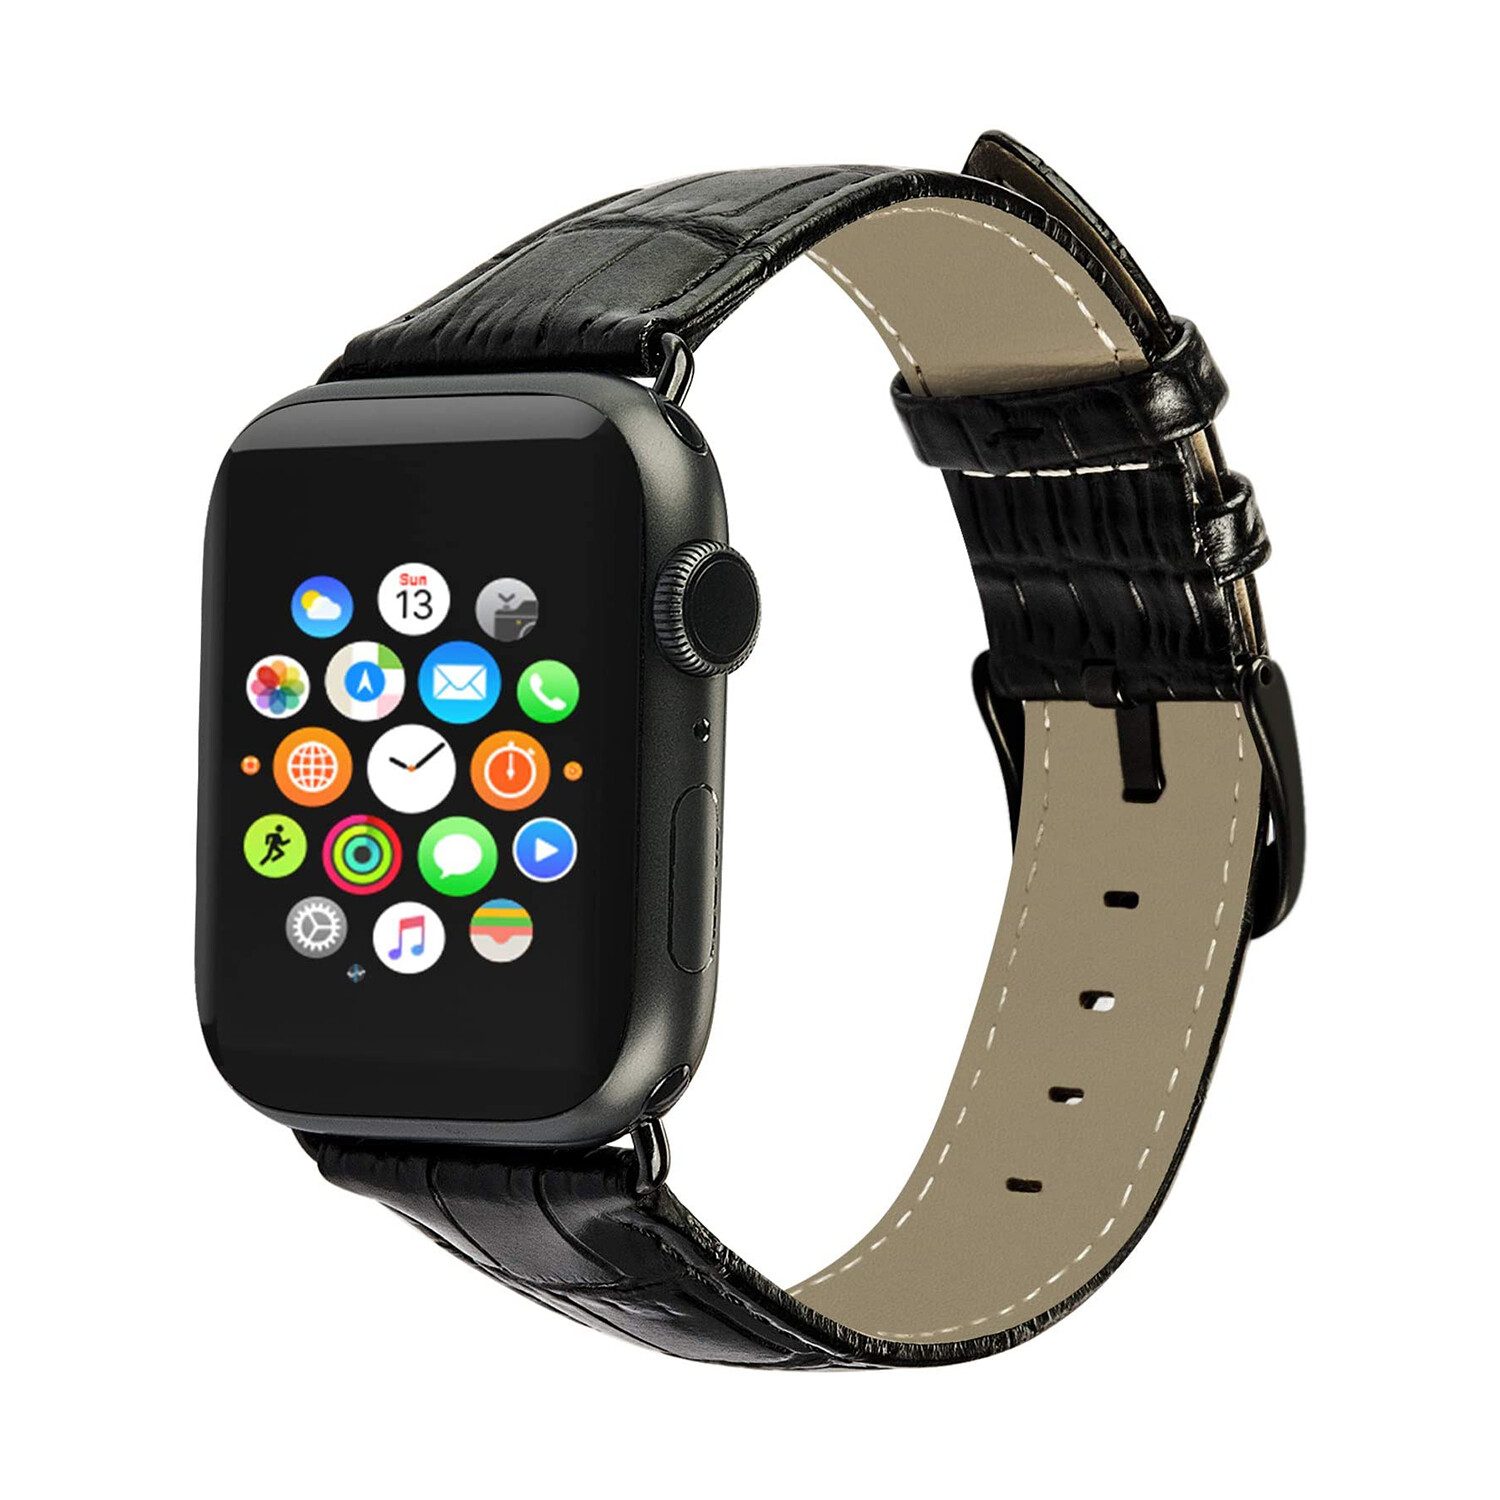 Leather Watch Strap for Apple Watch 42mm / 44mm - Black